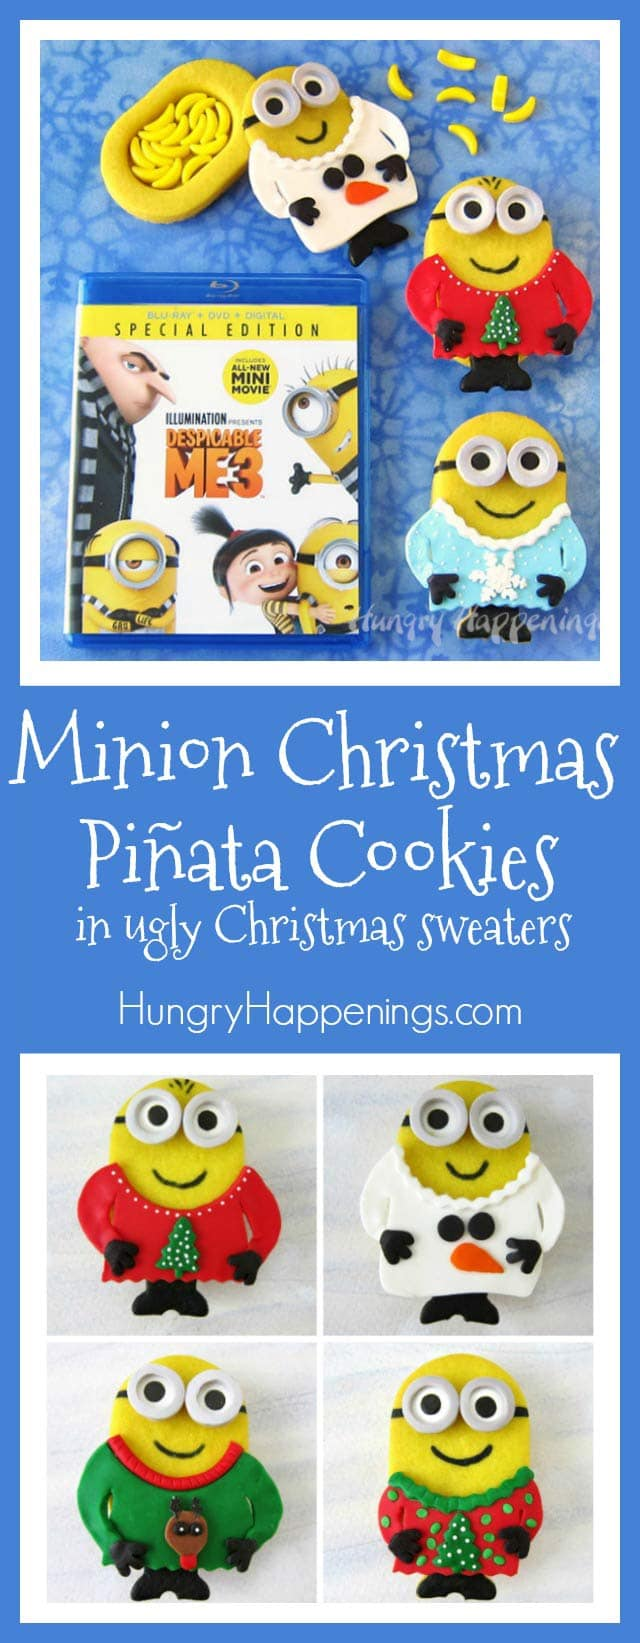 Break open one of these festively decorated Minion Christmas Piñata Cookies to find banana candies hiding inside. Each little Minion dressed in an ugly Christmas sweater looks as sweet as it tastes.